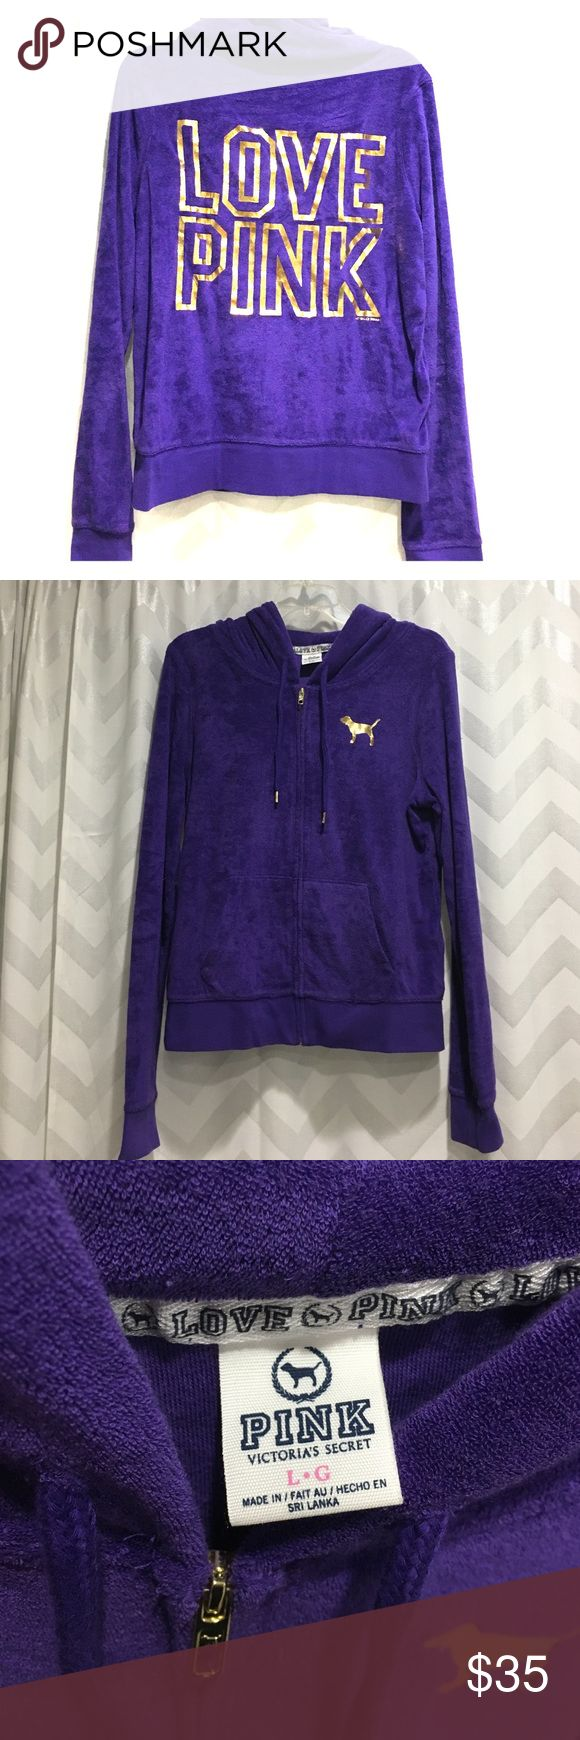 Victoria secret pink purple terry cloth hoodie Excellent condition vs Pink terry cloth purple zip up hoodie. The back is gold foil. Smoke and pet free home! PINK Victoria's Secret Tops Sweatshirts & Hoodies